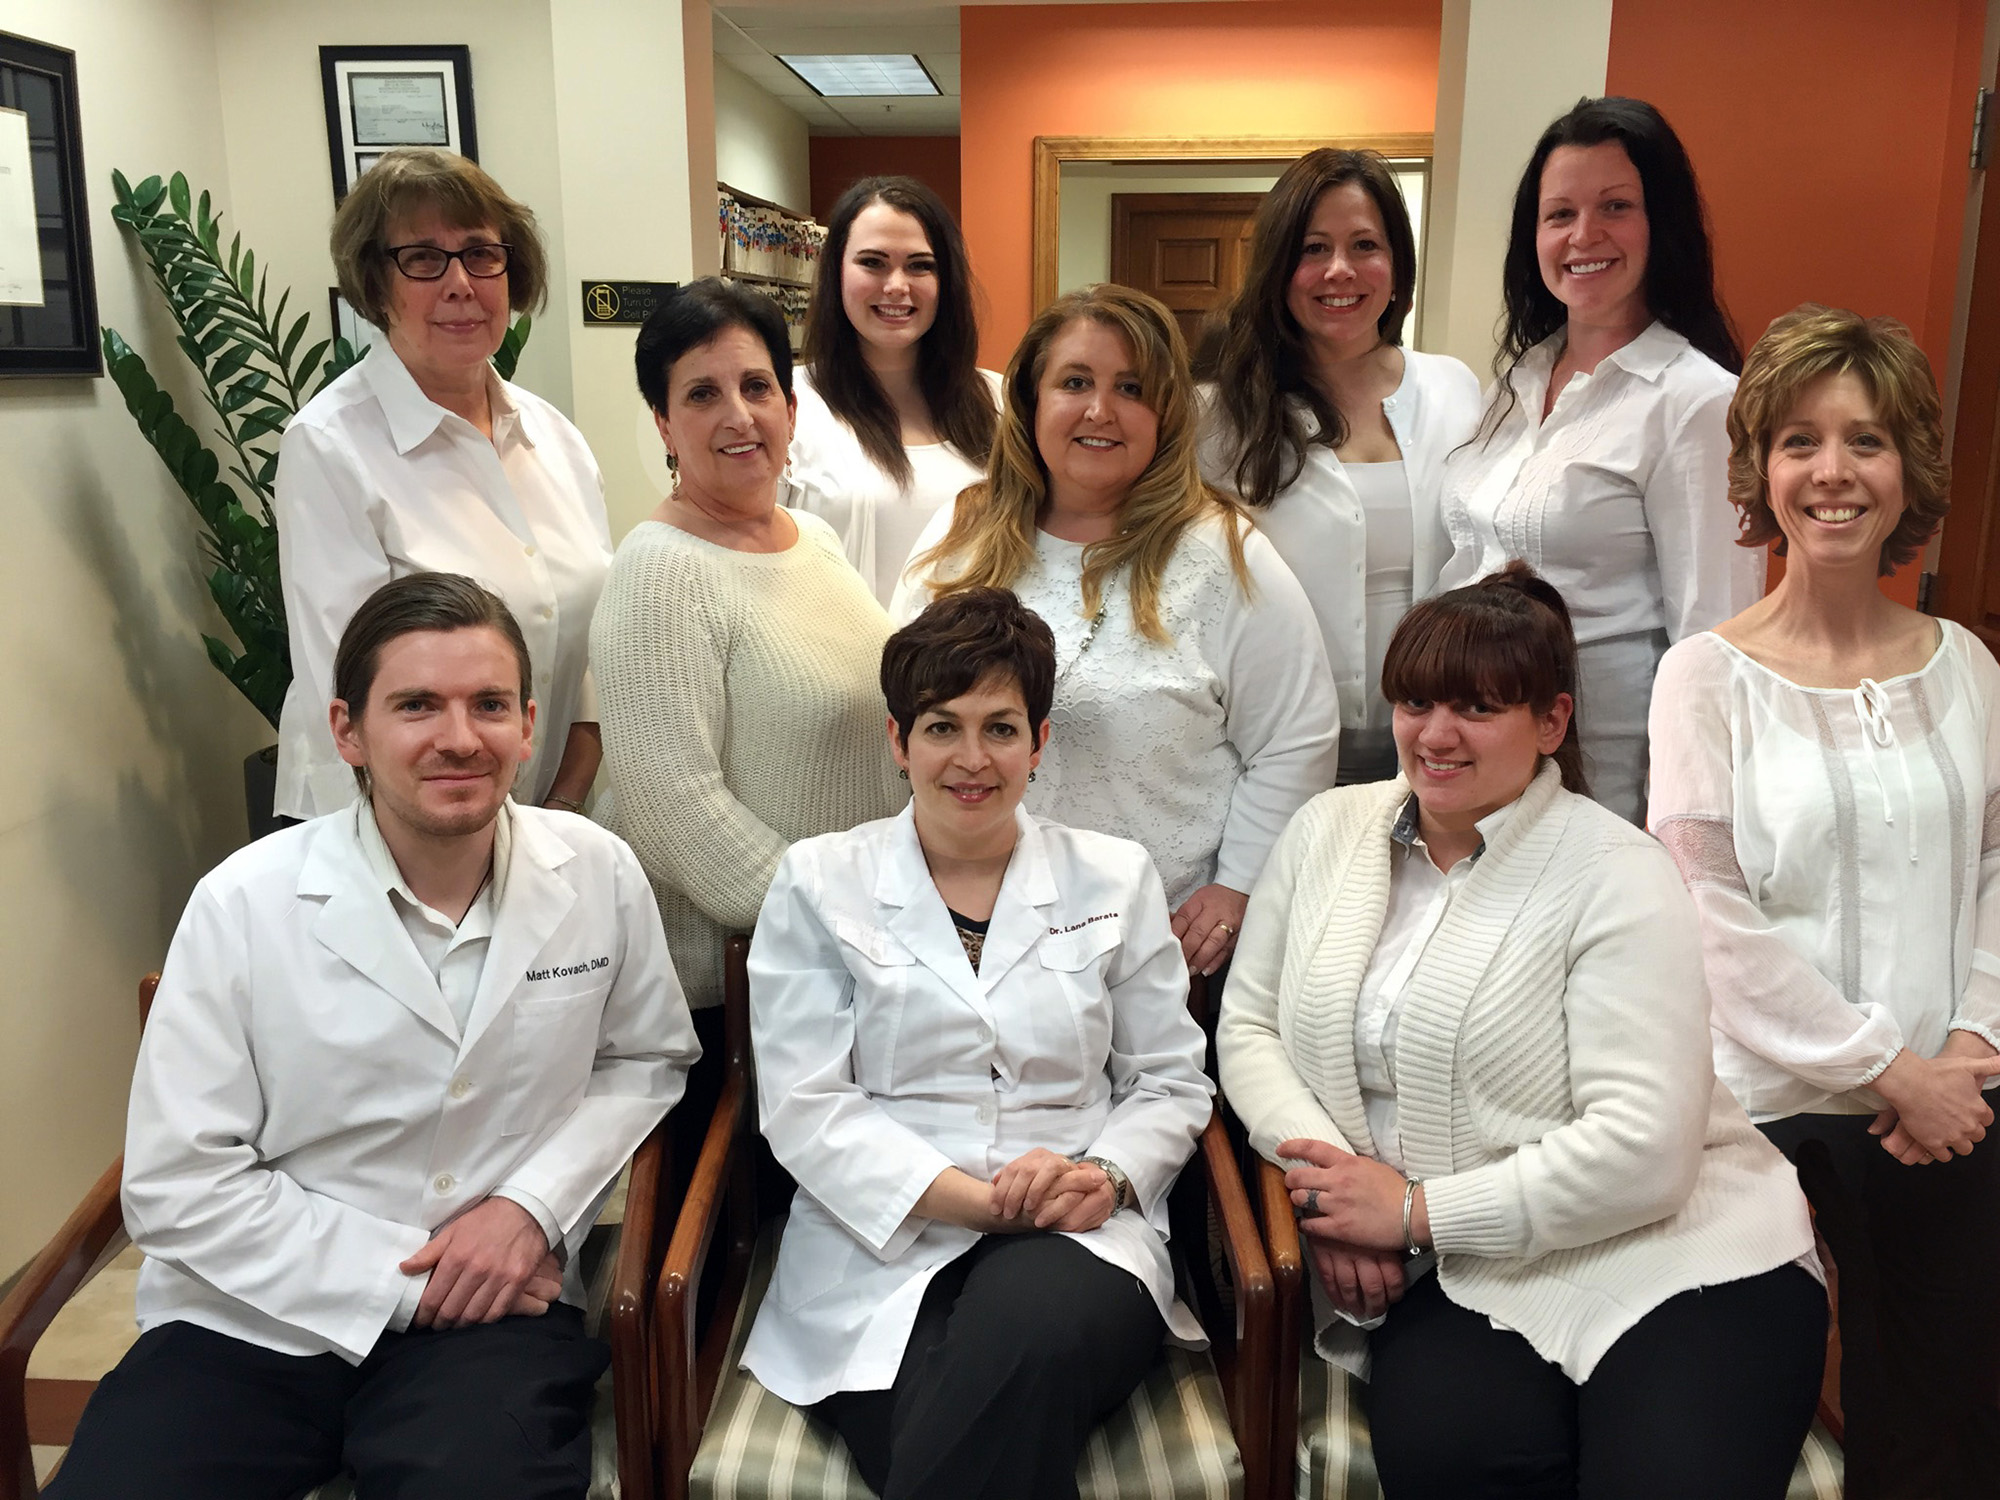 Family Dentist in Albany